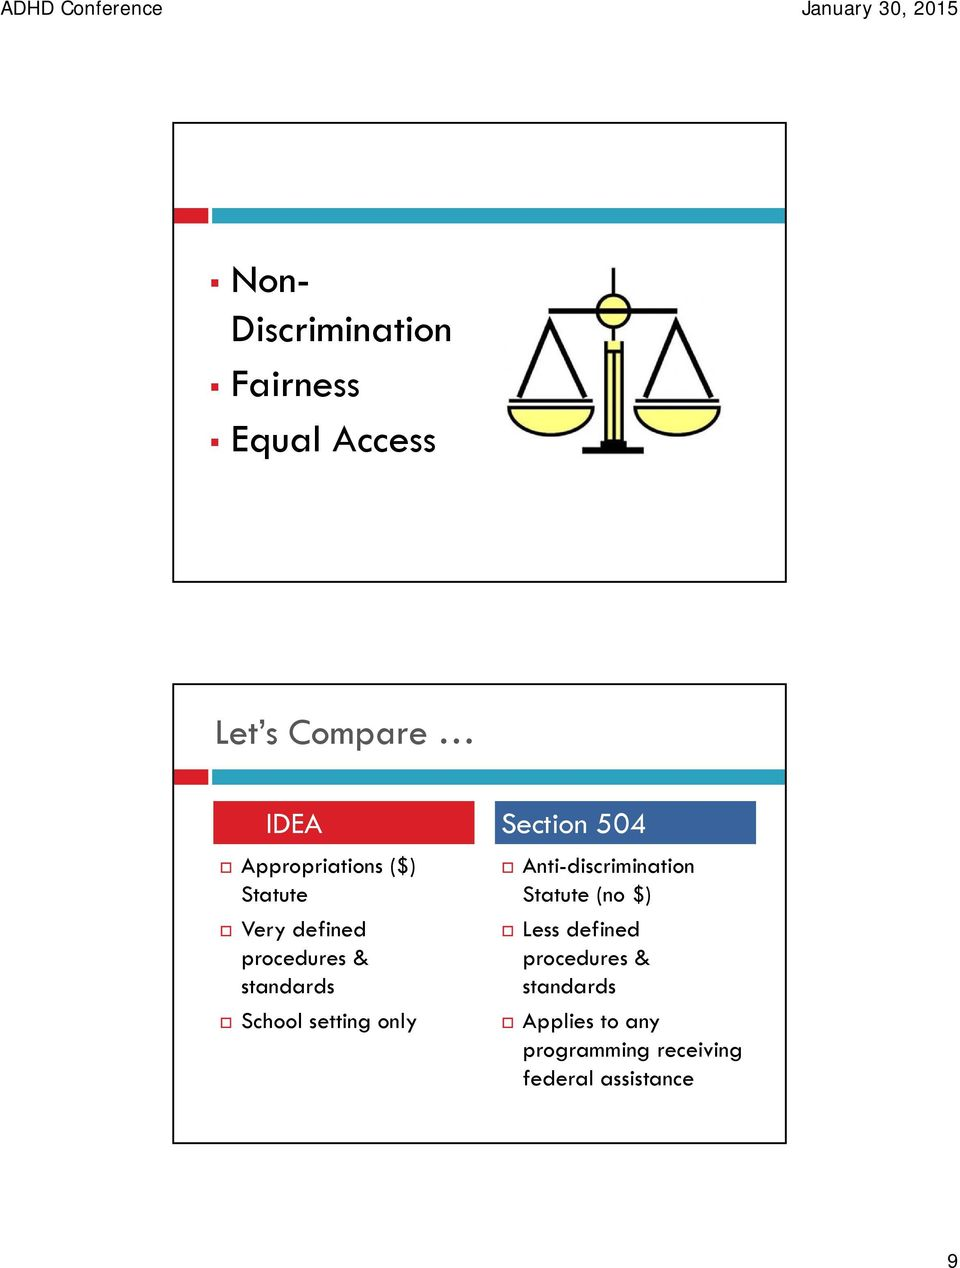 standards School setting only Anti-discrimination Statute (no $) Less defined